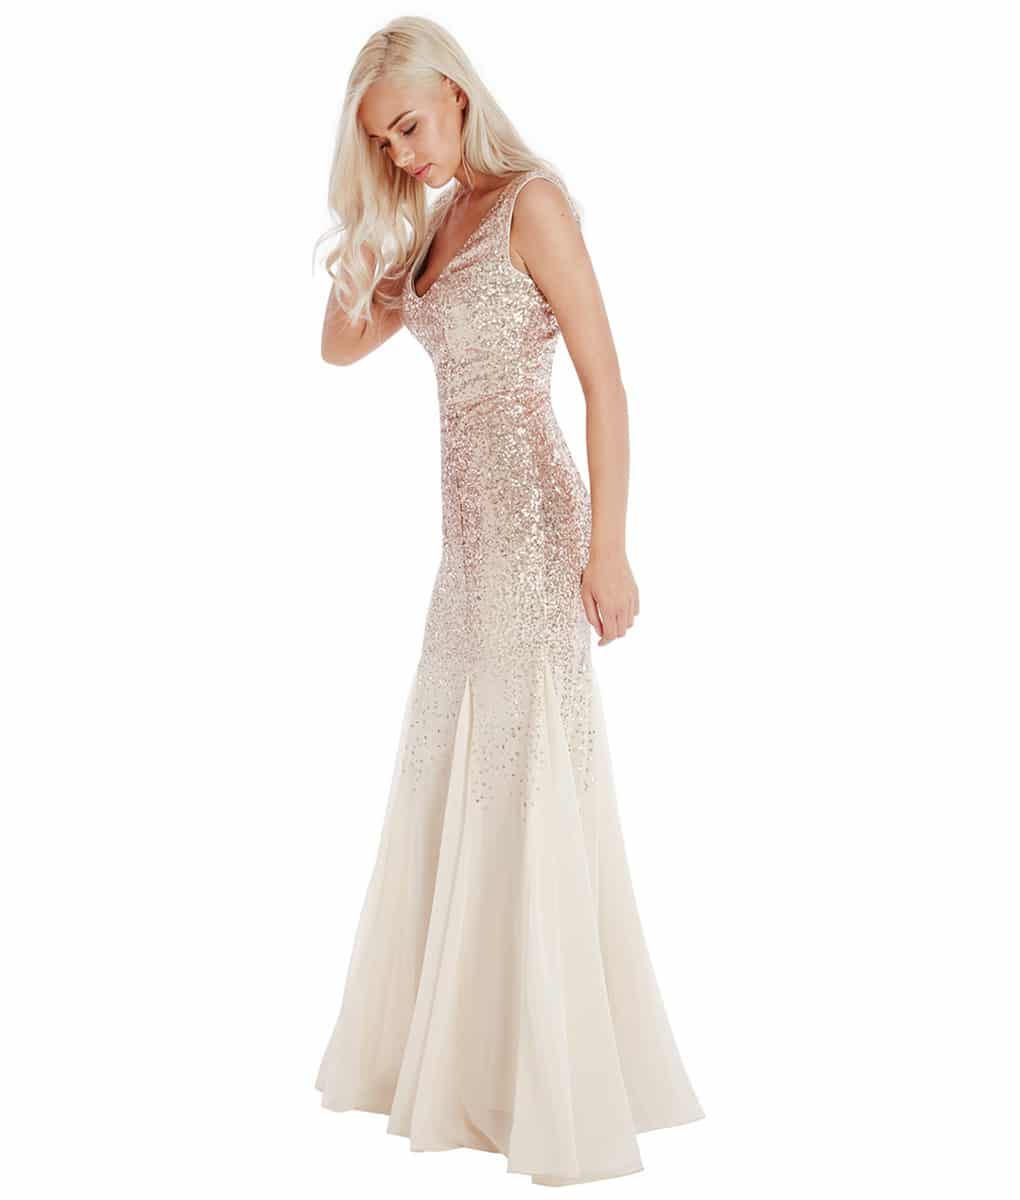 Chiffon Dressing Gown: City Goddess - Champagne Sequins & Chiffon Gown